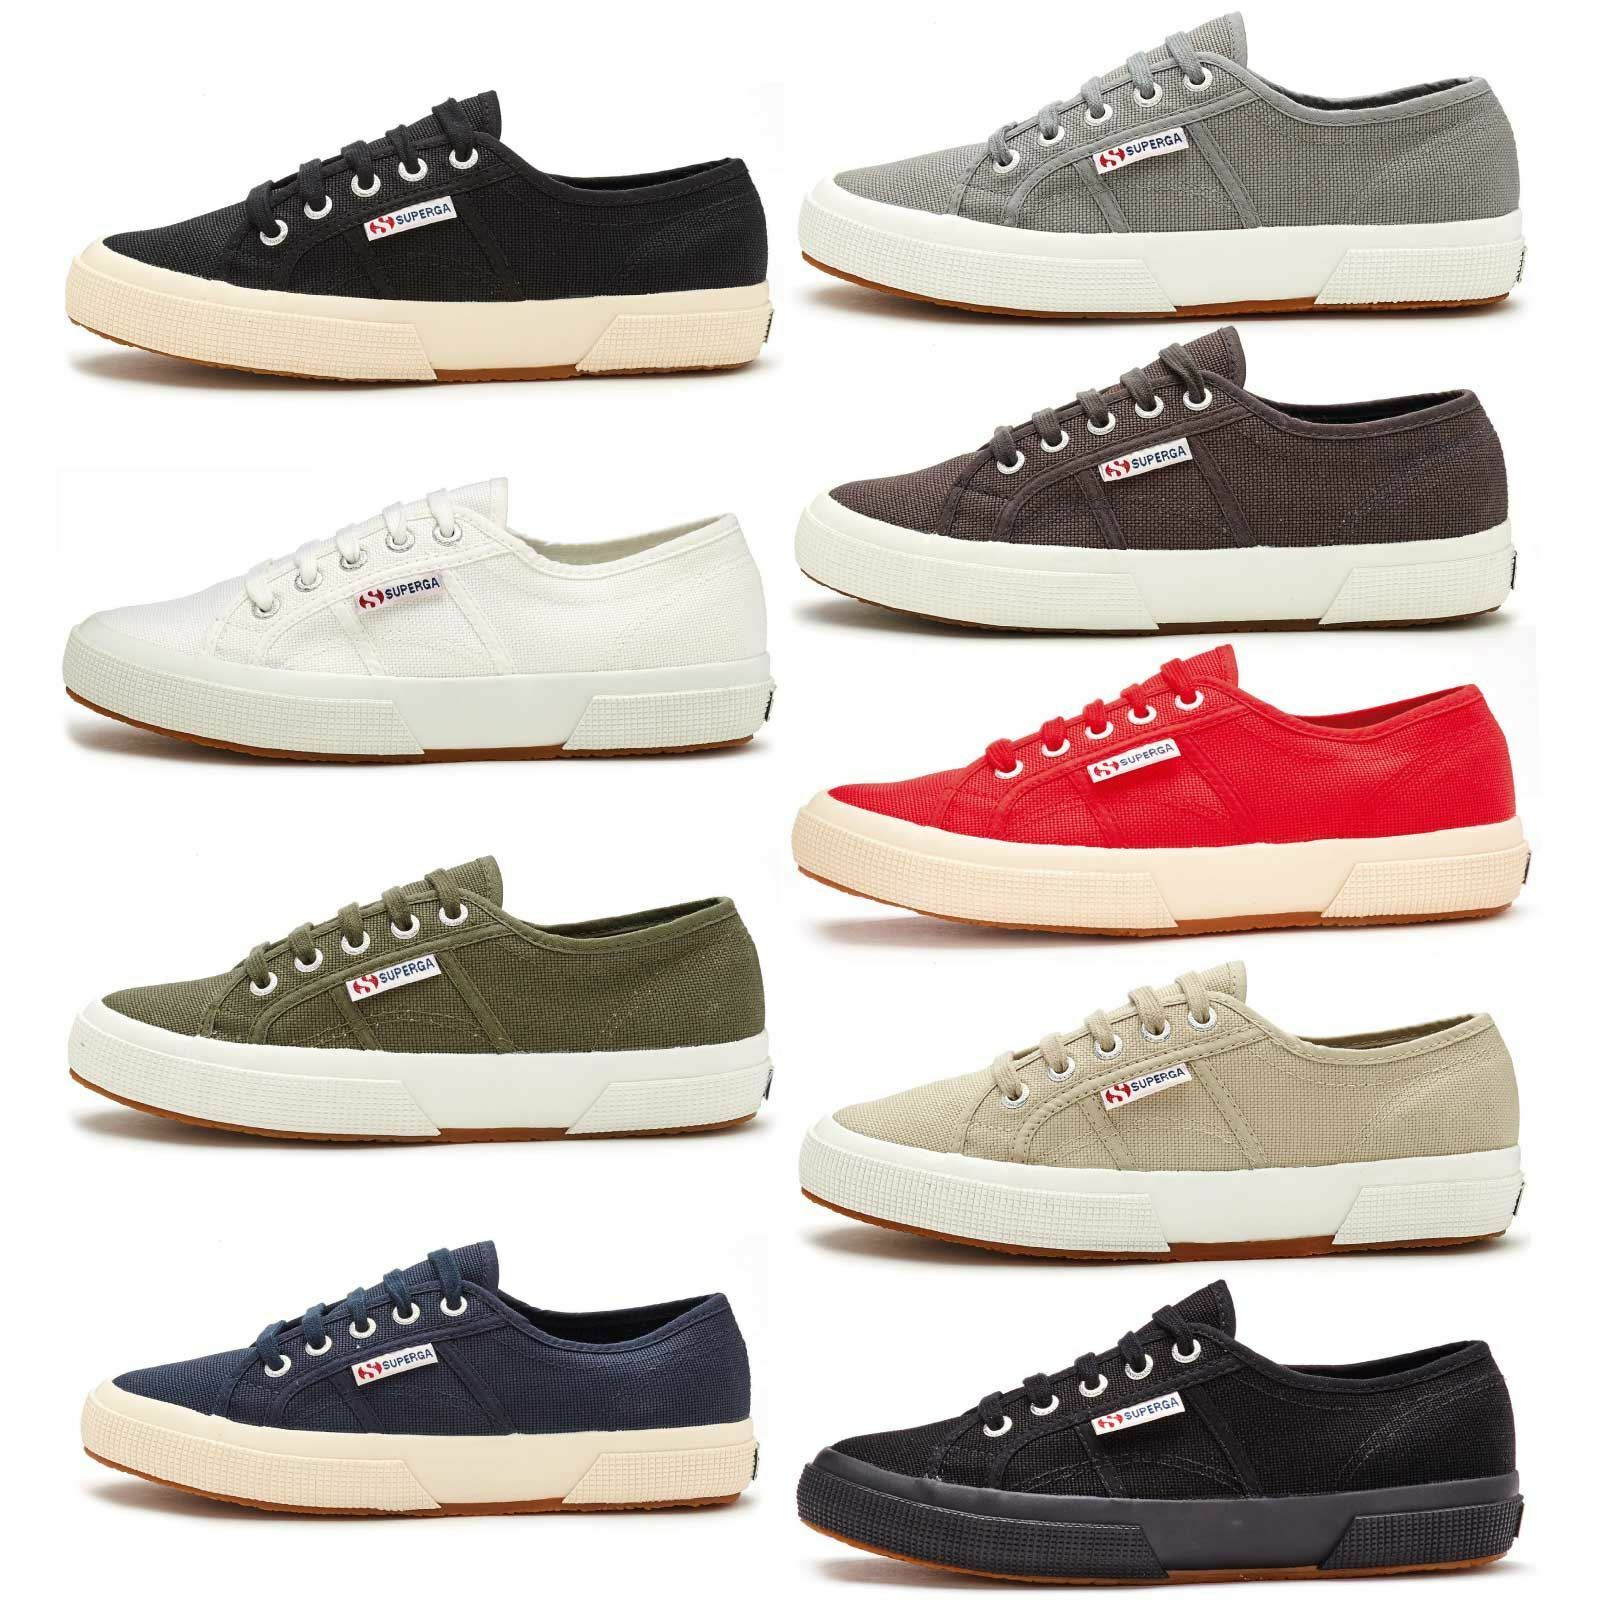 Superga 2750 Cotu Classic Canvas  Chaussures  in  blanc  Taupe,  noir ,  Gris  bleu & Green